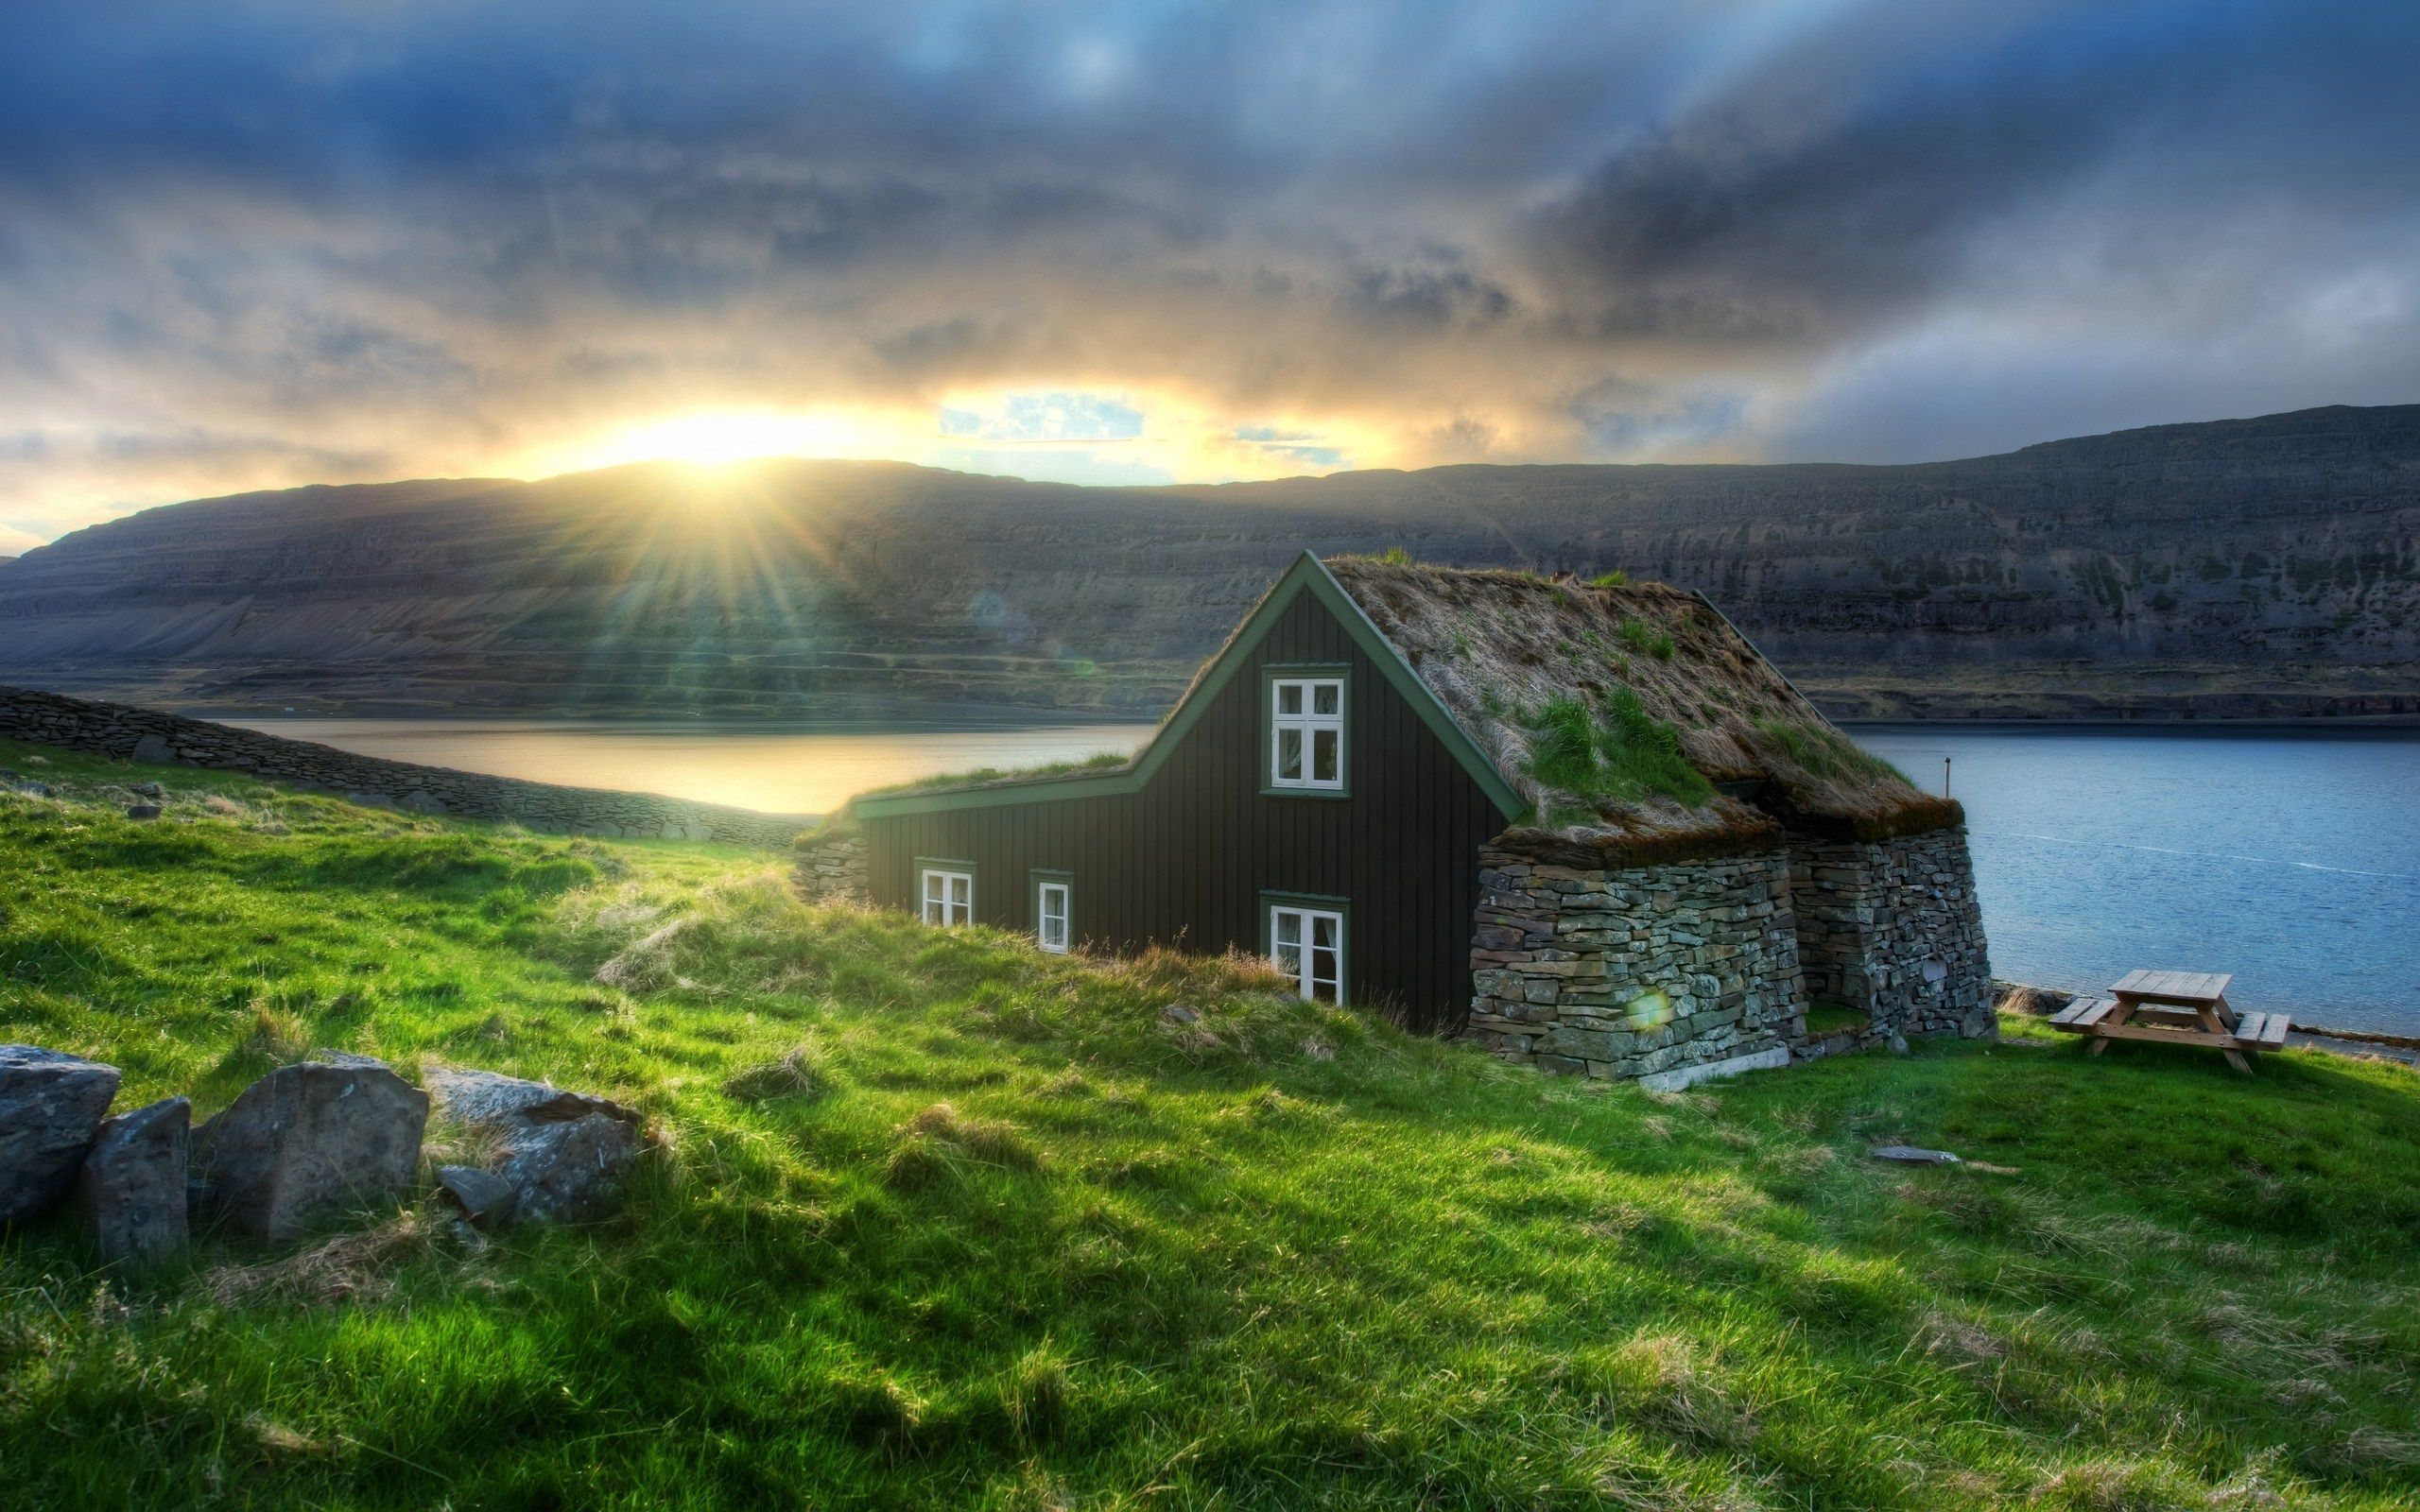 151184 download wallpaper Nature, Iceland, House, Stones, Sunset, Lake, Hermit, Mountains screensavers and pictures for free